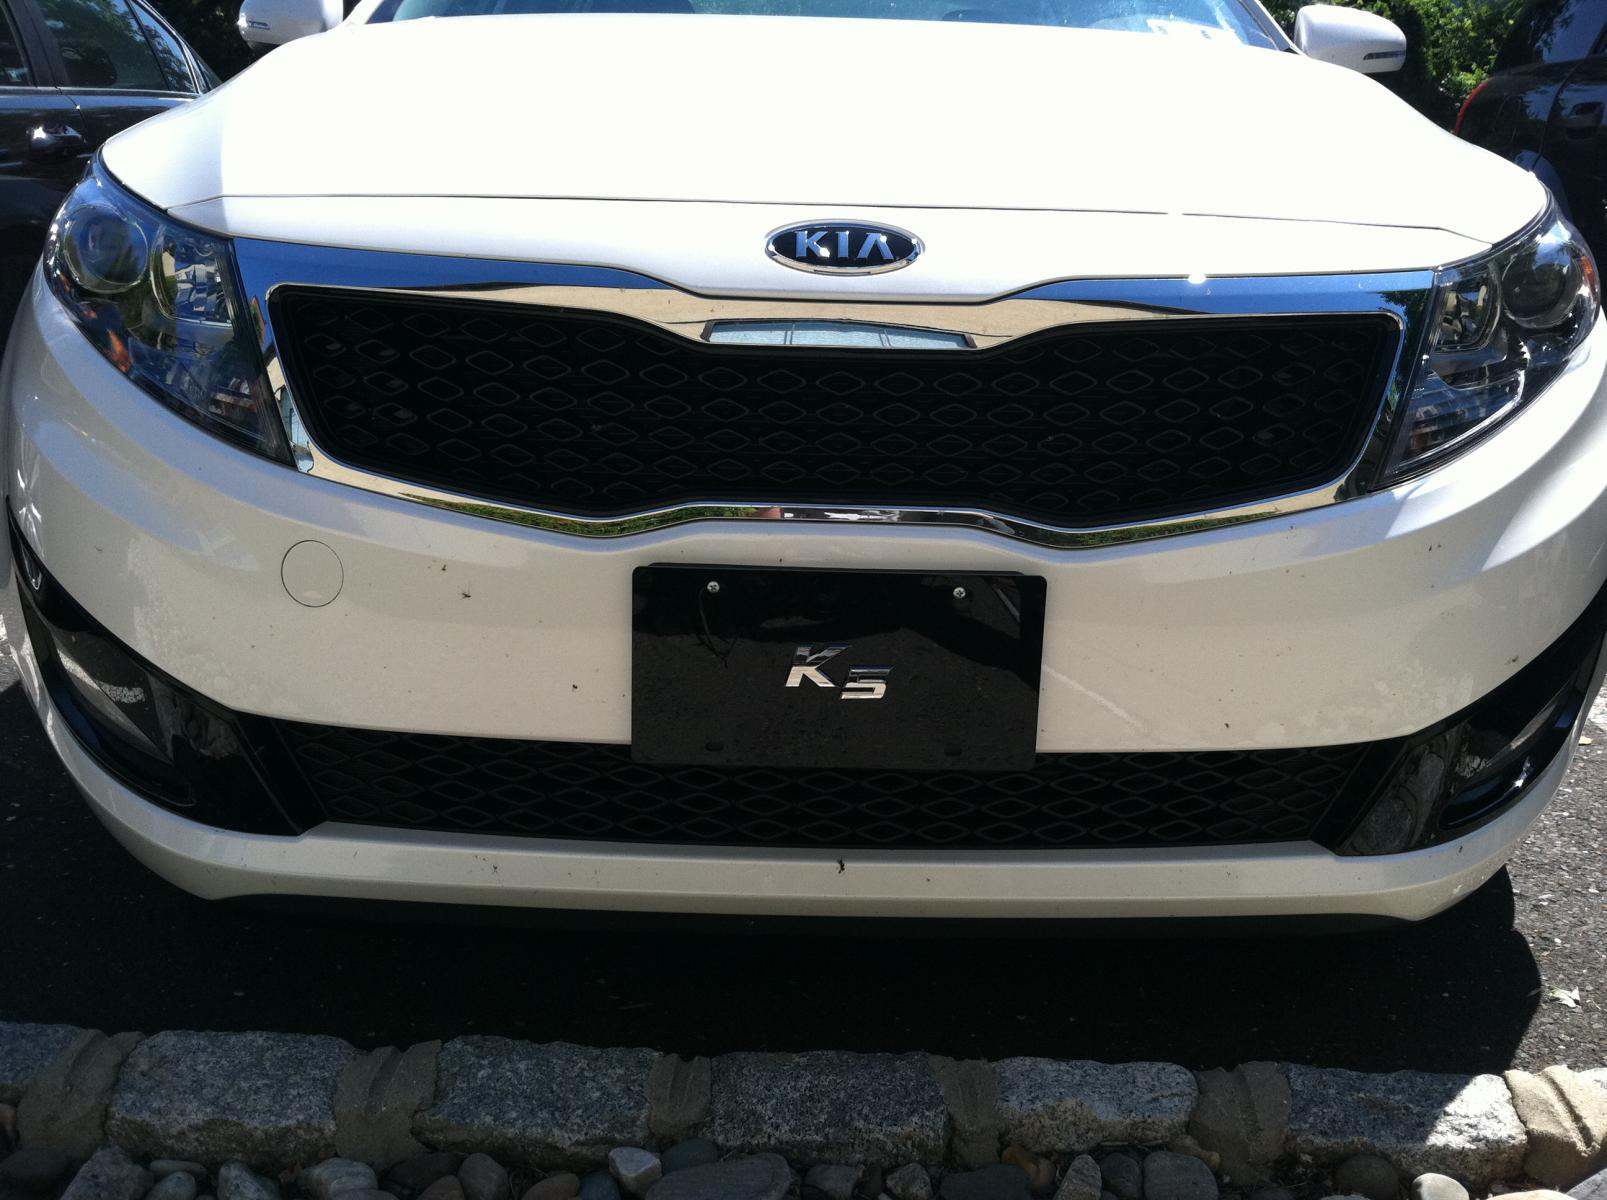 Front plate-plate-2.jpg ... & Front plate